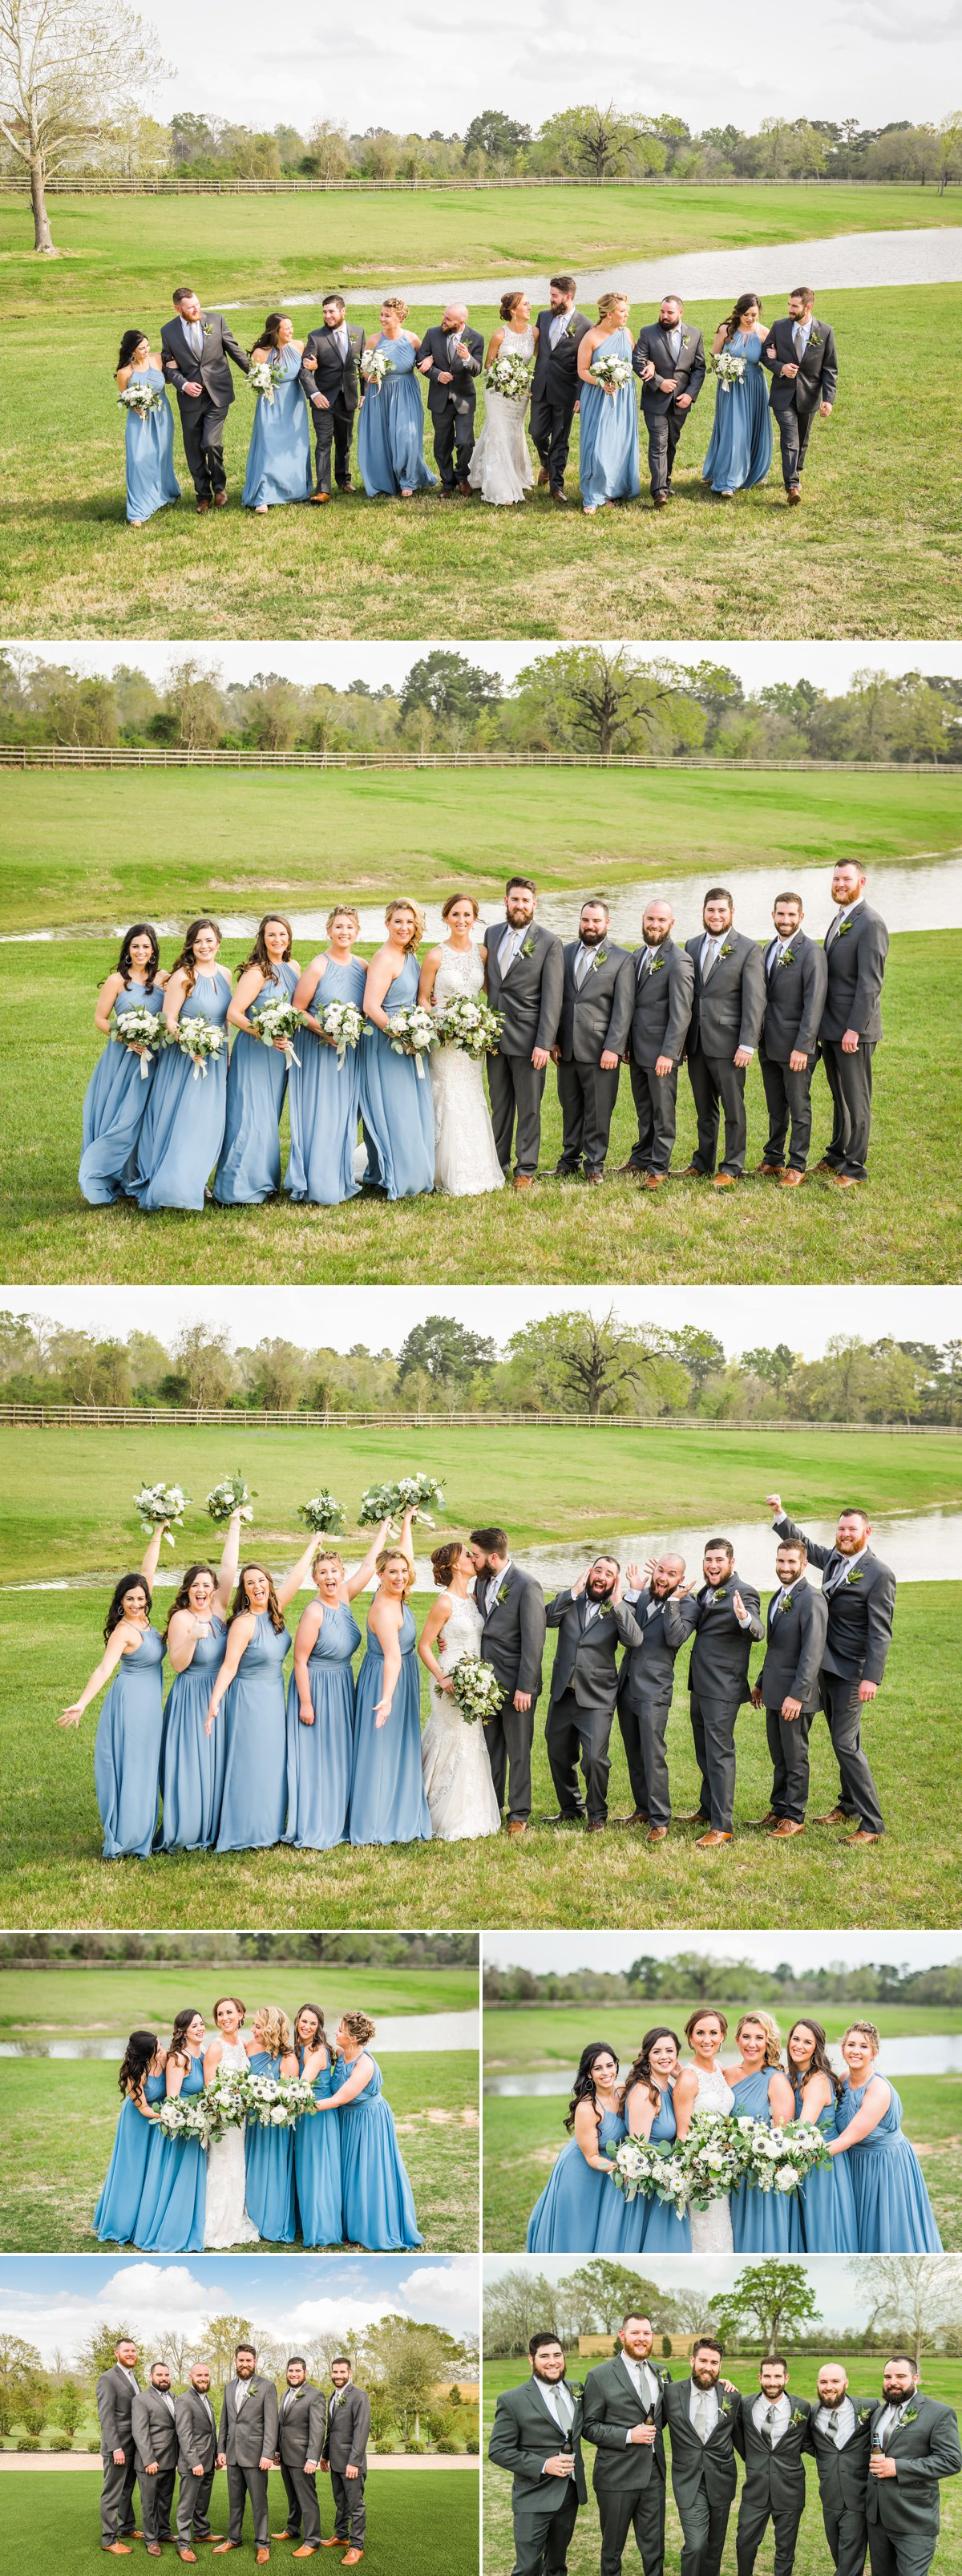 The Farmhouse Wedding Venue Wedding Party by Nate Messarra Photography